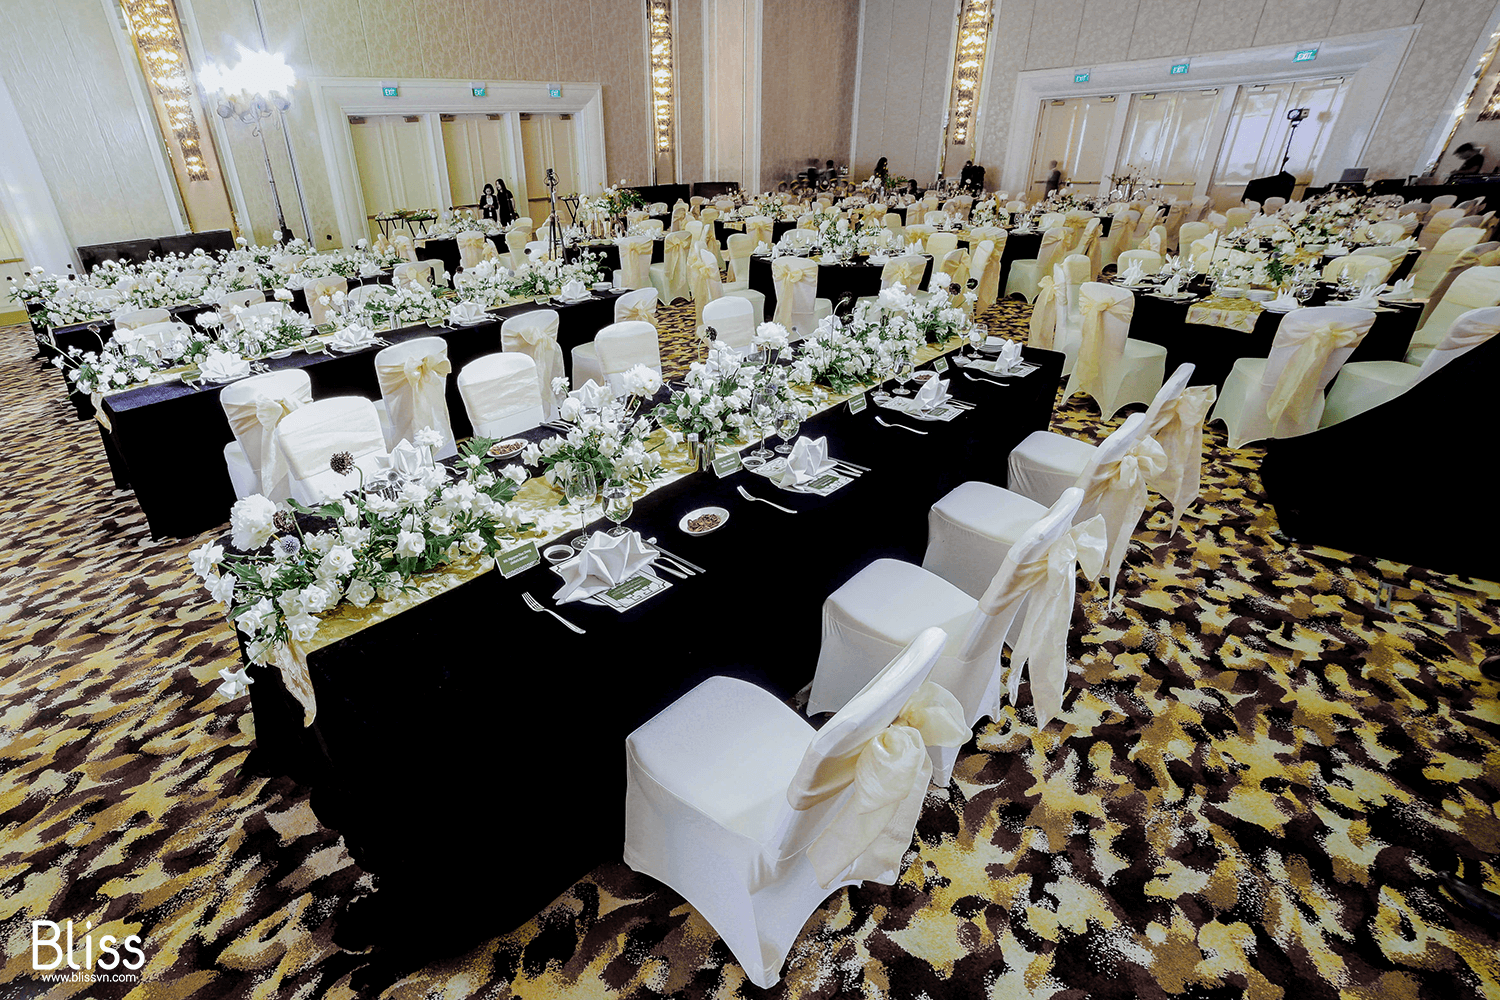 ballroom-su-kien-ki-niem-20-nam-thanh-lap-tai-the-grand-ho-tram-strip-bliss-wedding-event-vietnam